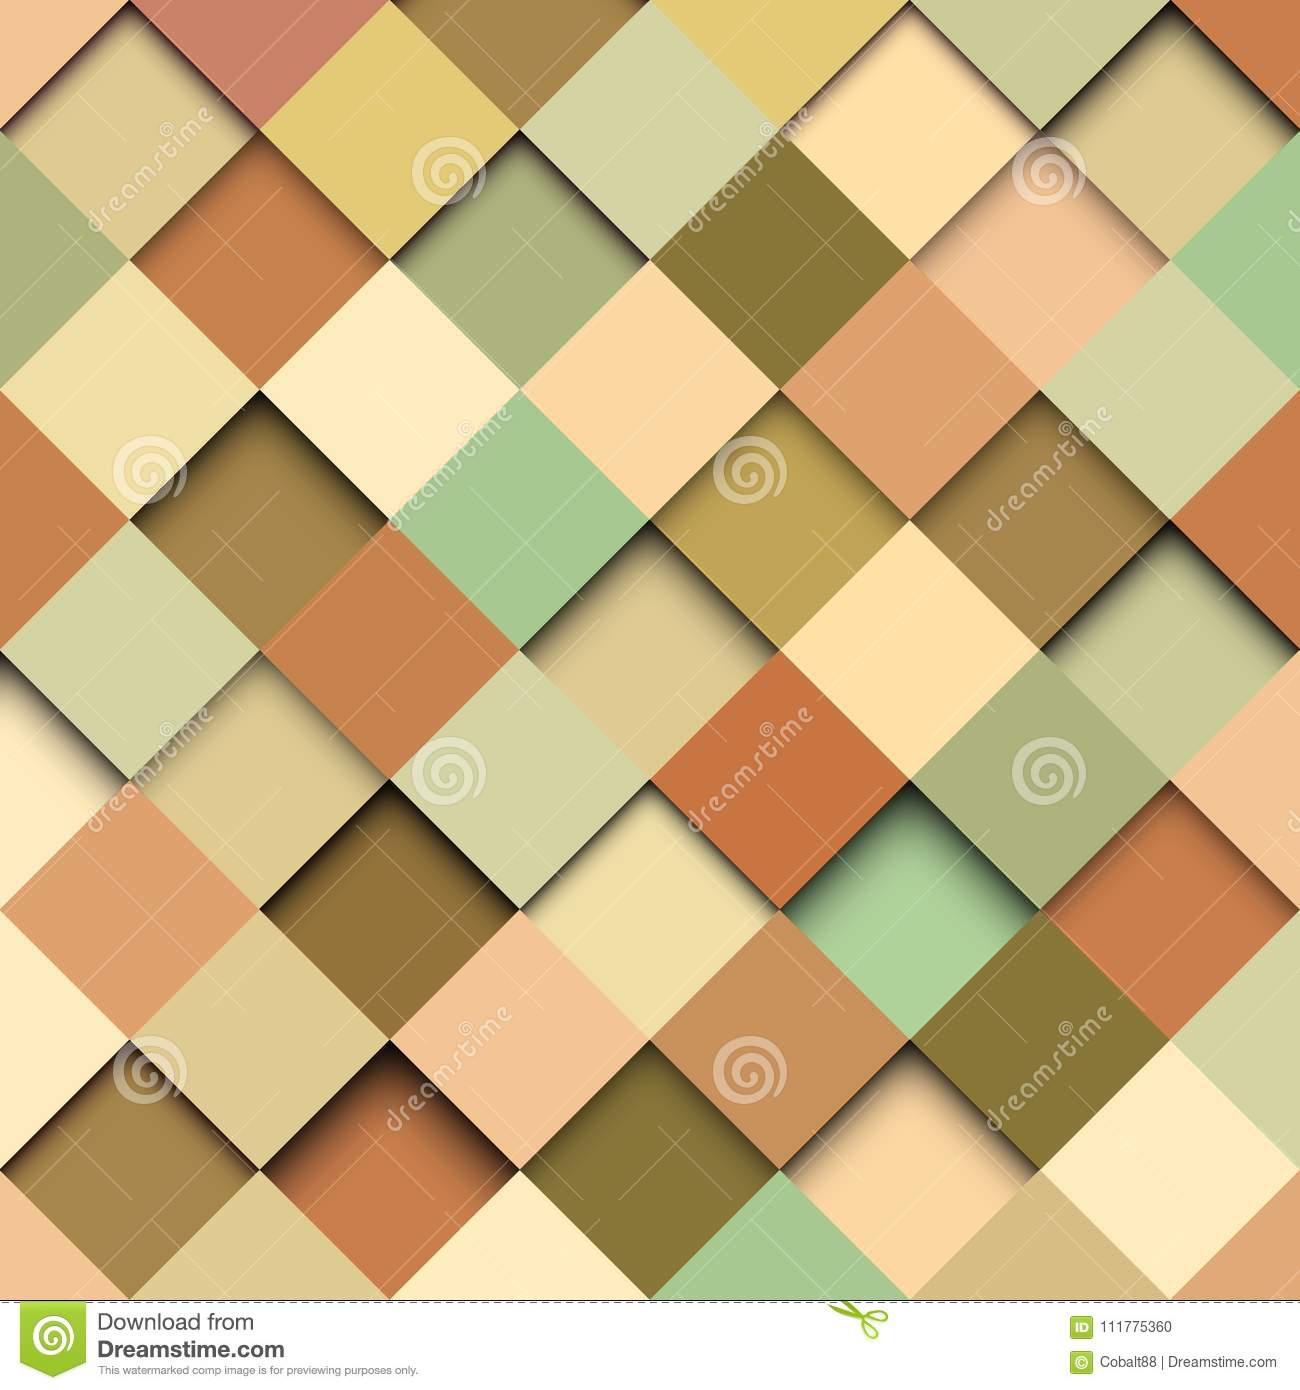 Abstract background mosaic